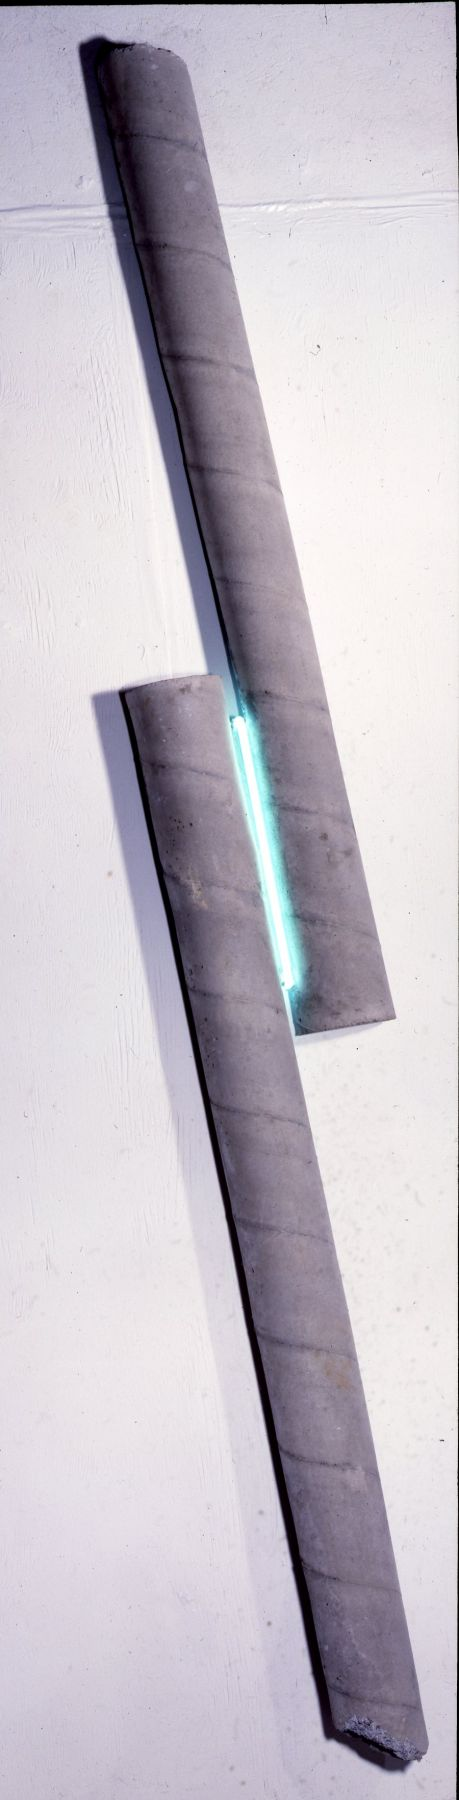 Two Bars of Concrete with a Turquoise Neon